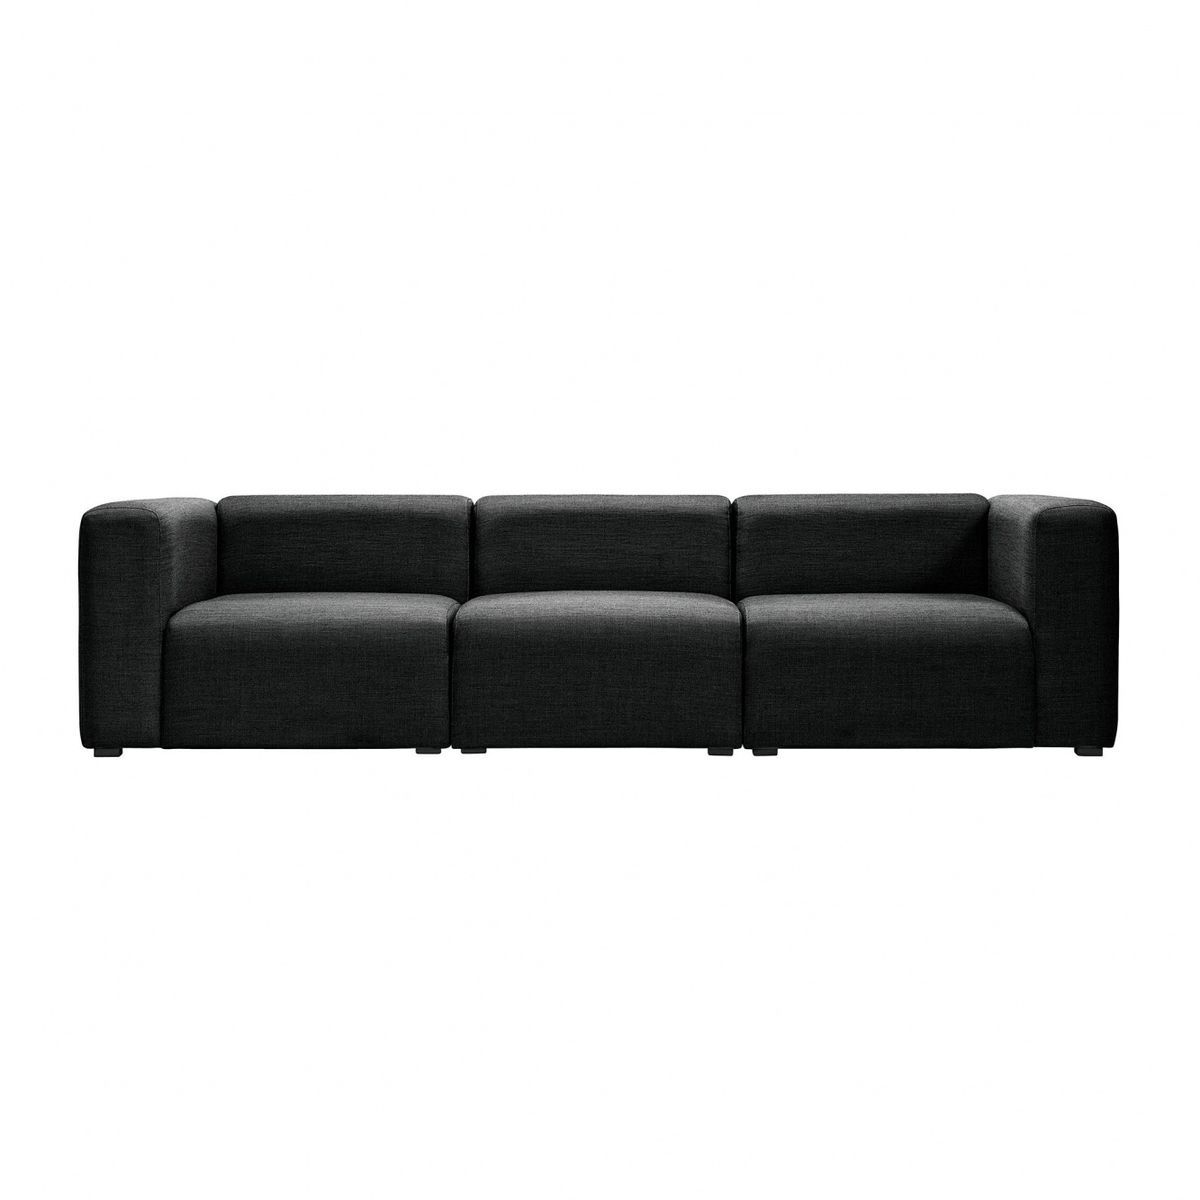 mags 3 seater sofa fabric surface hay sofas seating. Black Bedroom Furniture Sets. Home Design Ideas